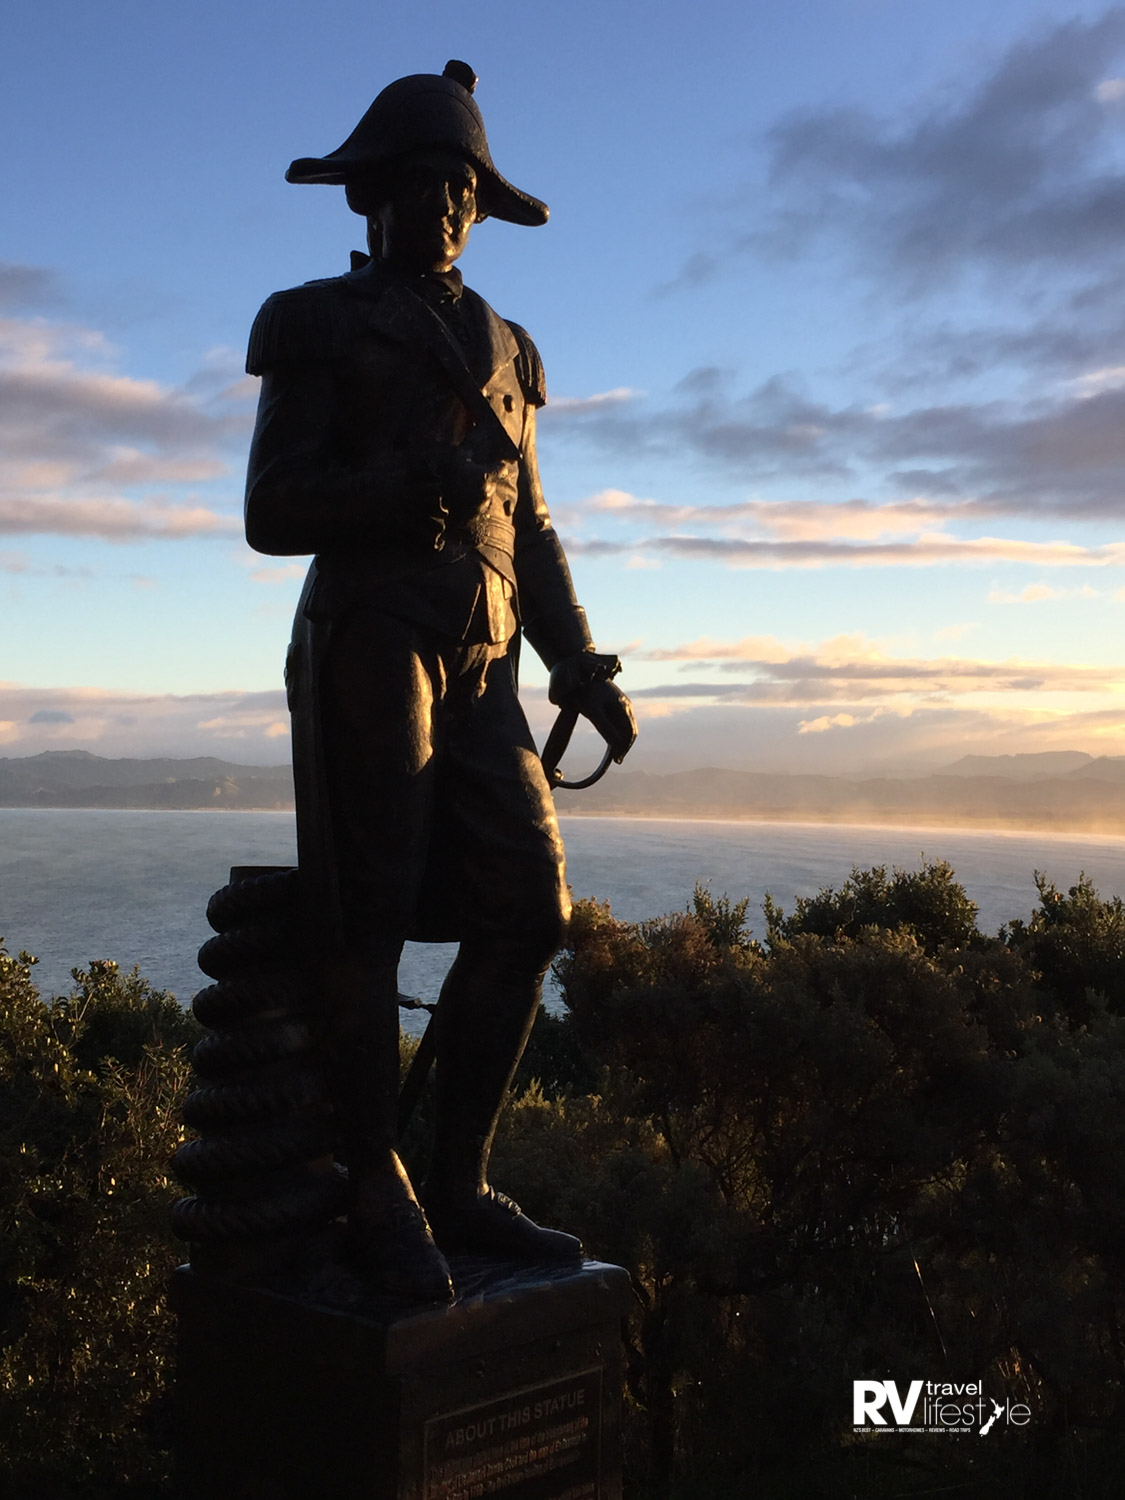 The controversial statue of Captain James Cook on Titirangi-Kaiti Hill. Photo by Justine Tyerman